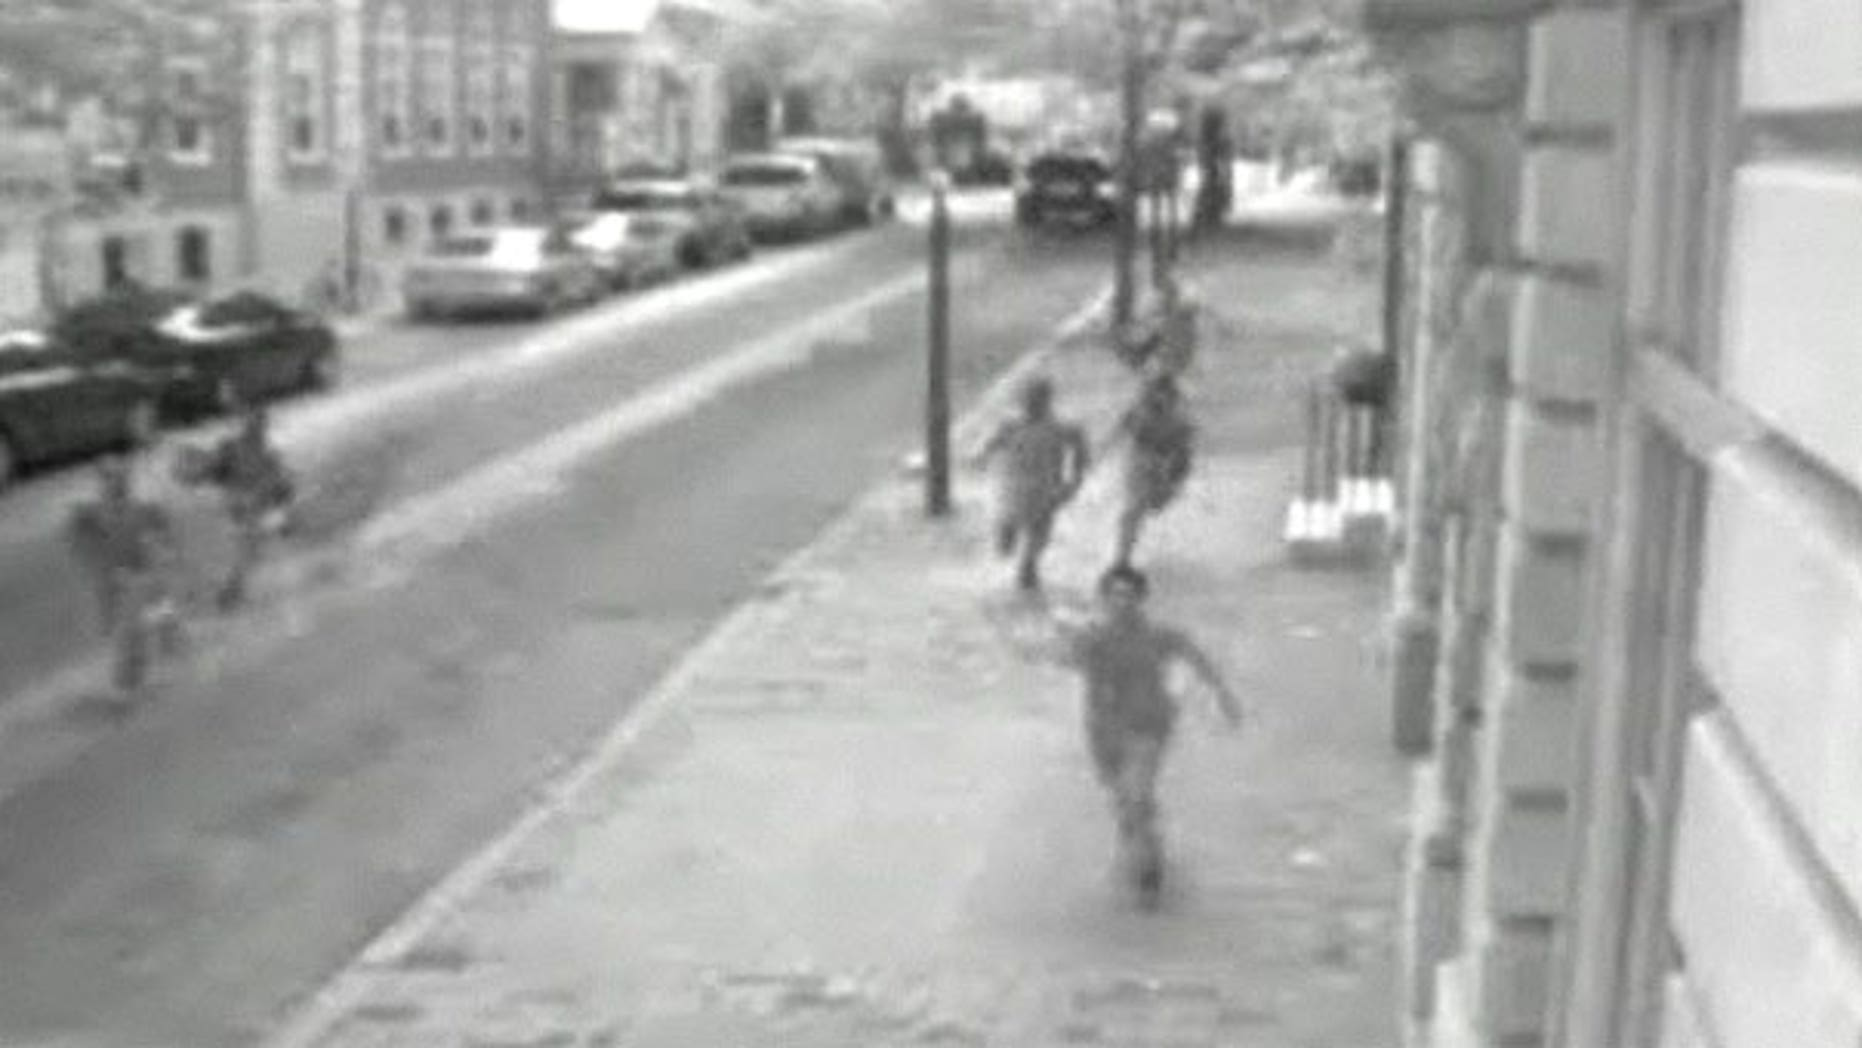 This screengrab shows footage from a 'flash mob' attack on July 29.